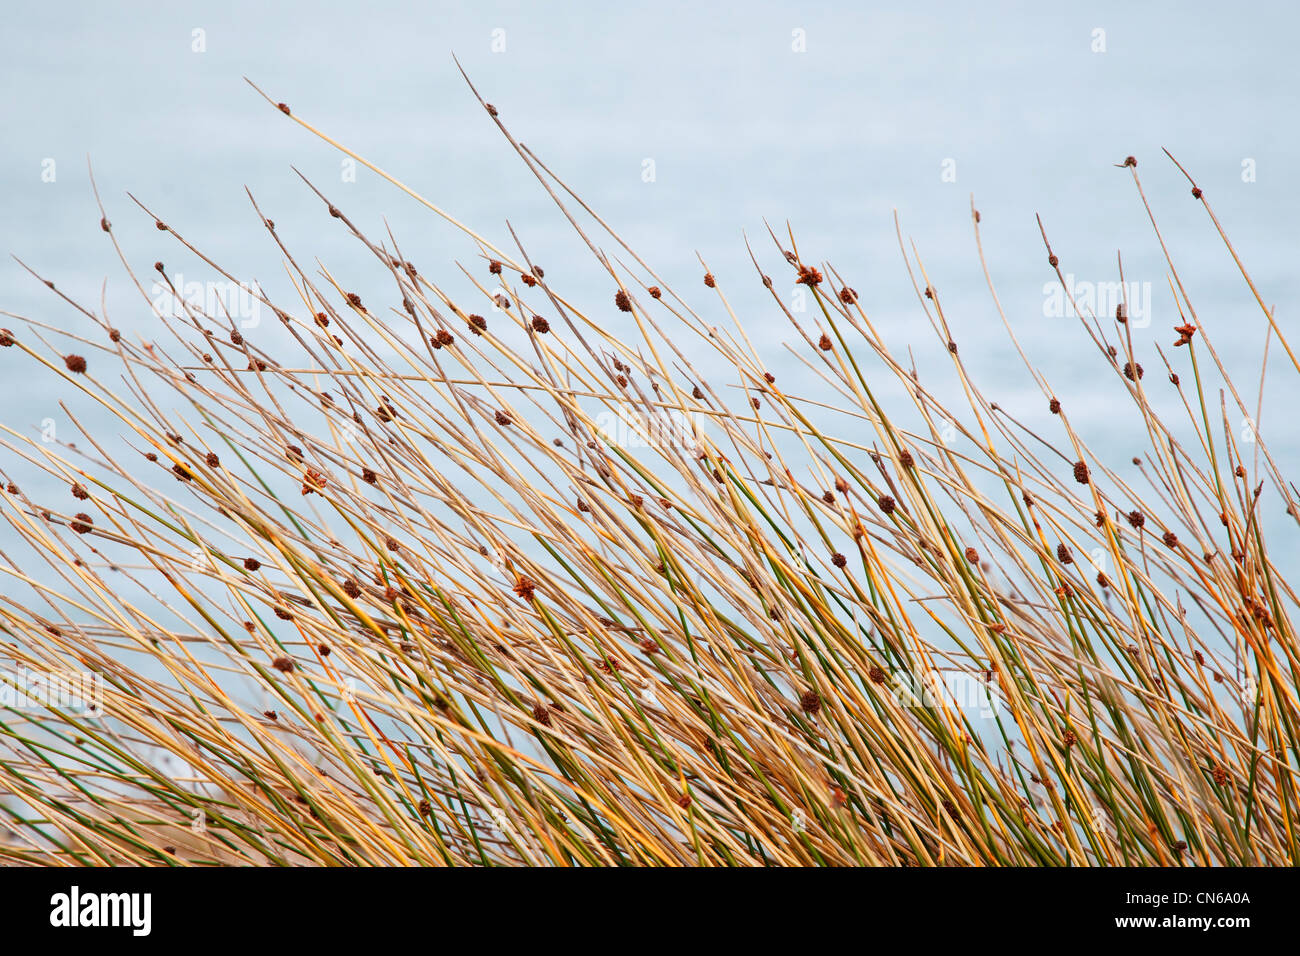 Dune grass Victor Harbour South Australia - Stock Image